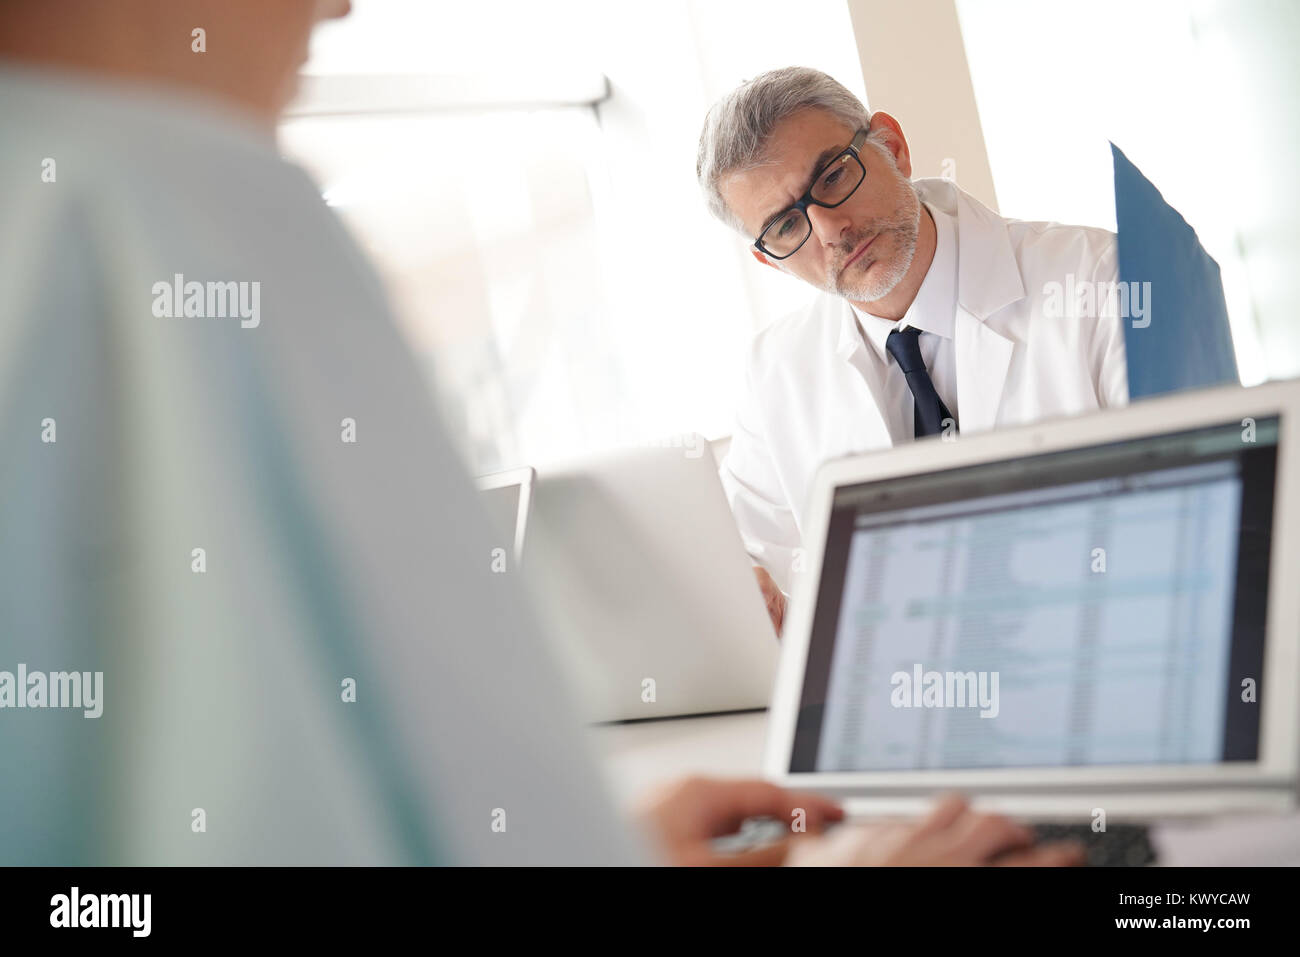 Mature doctor in office working on laptop computer Photo Stock